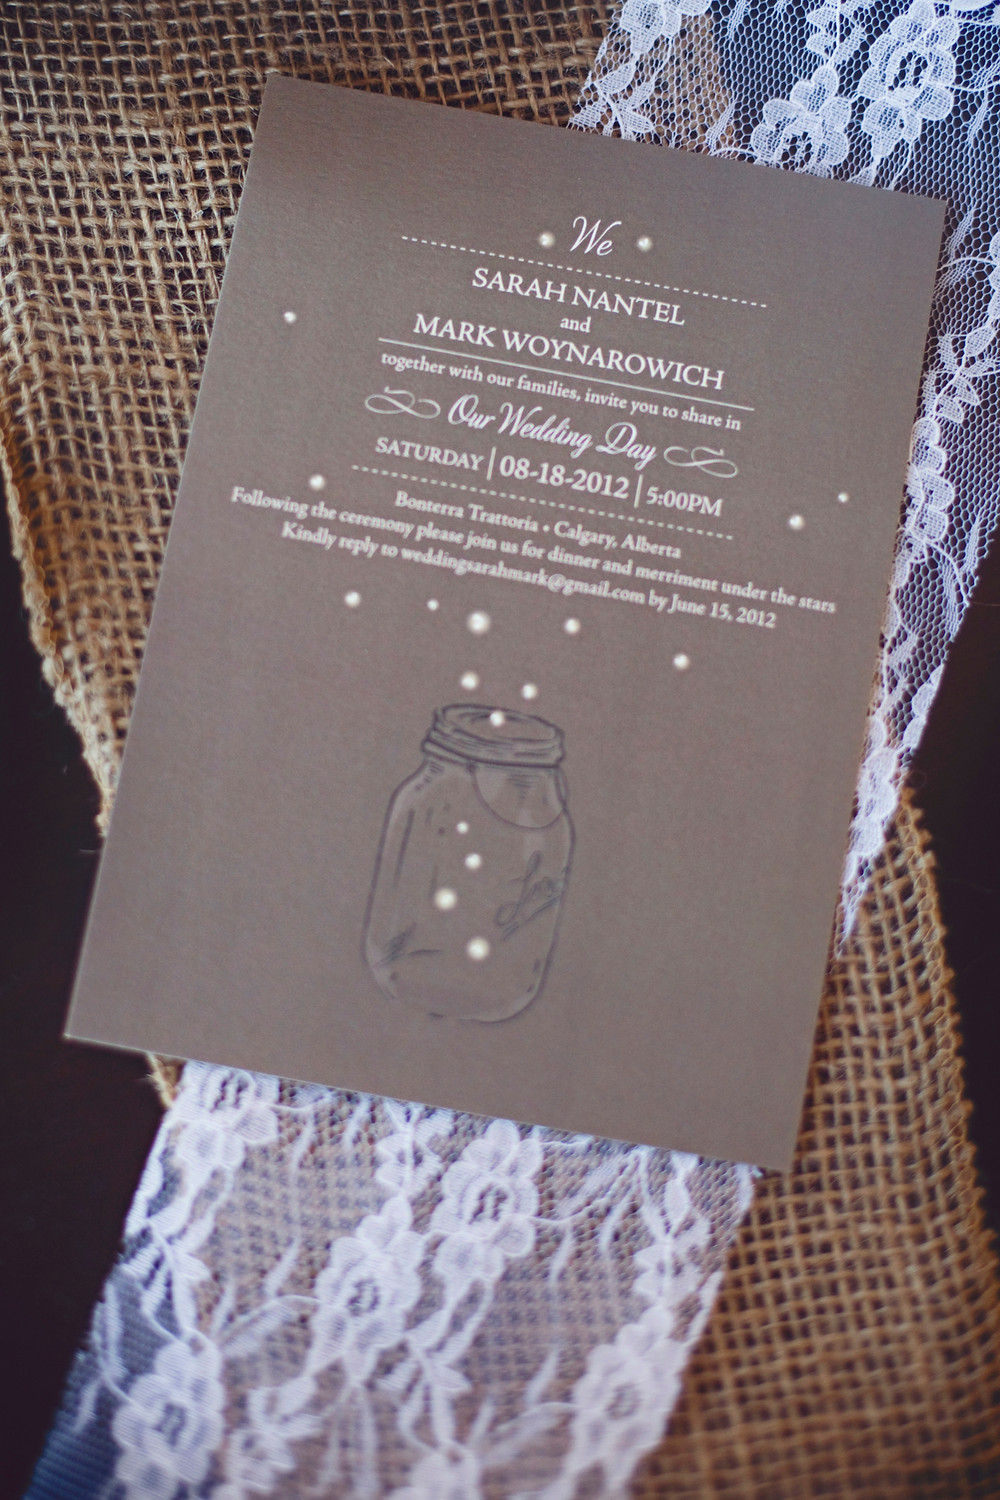 A brown rustic wedding invitation laying on a piece of lace and burlap.